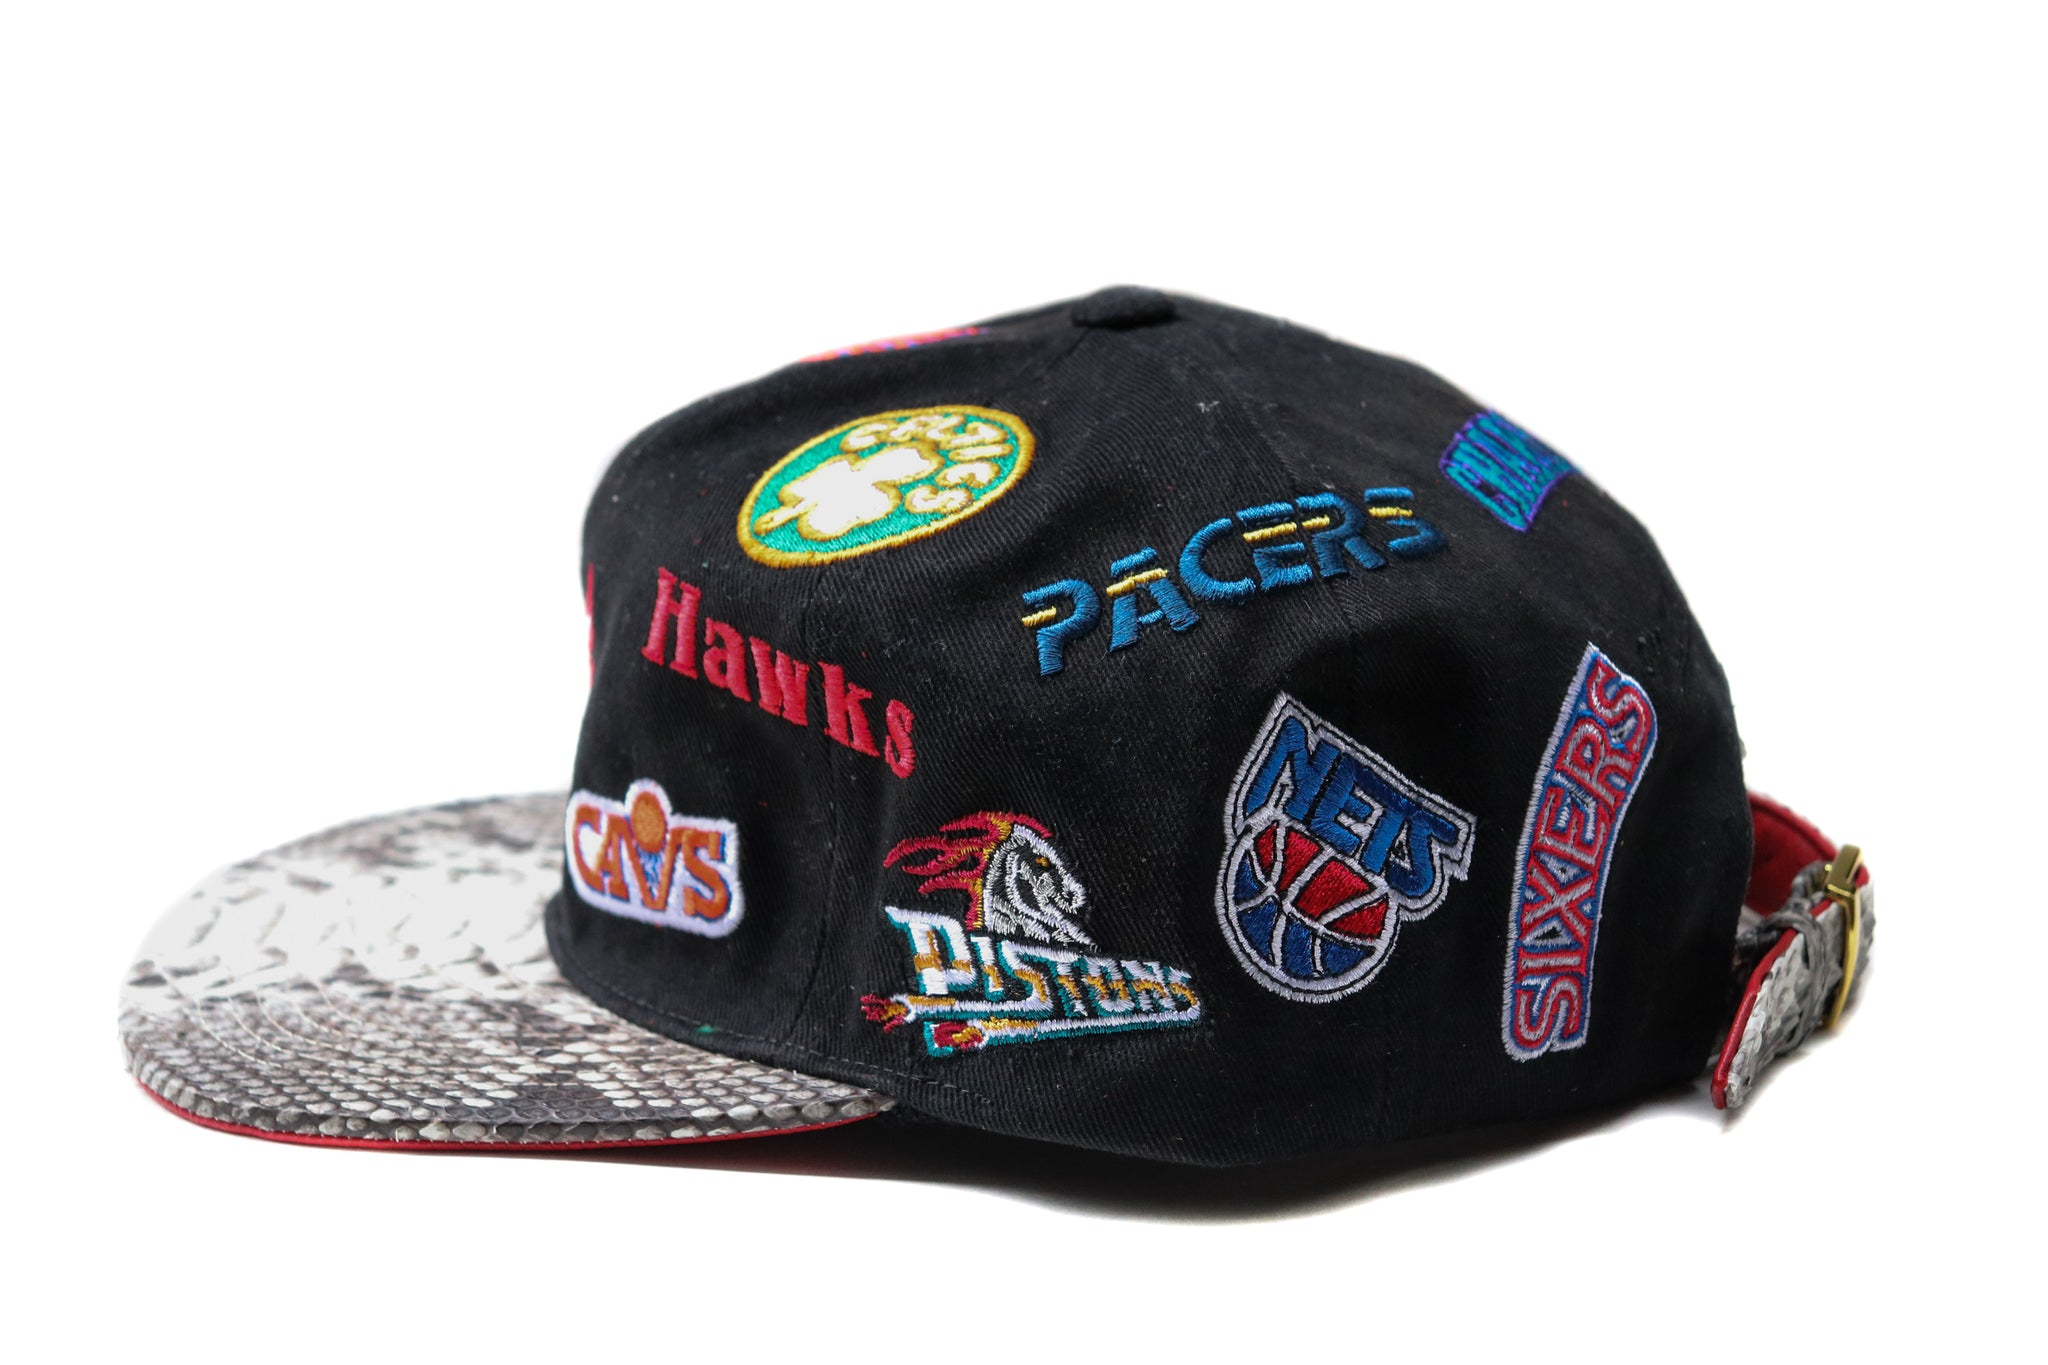 HATSURGEON x Mitchell & Ness NBA Eastern Conference Retro All Over Strapback